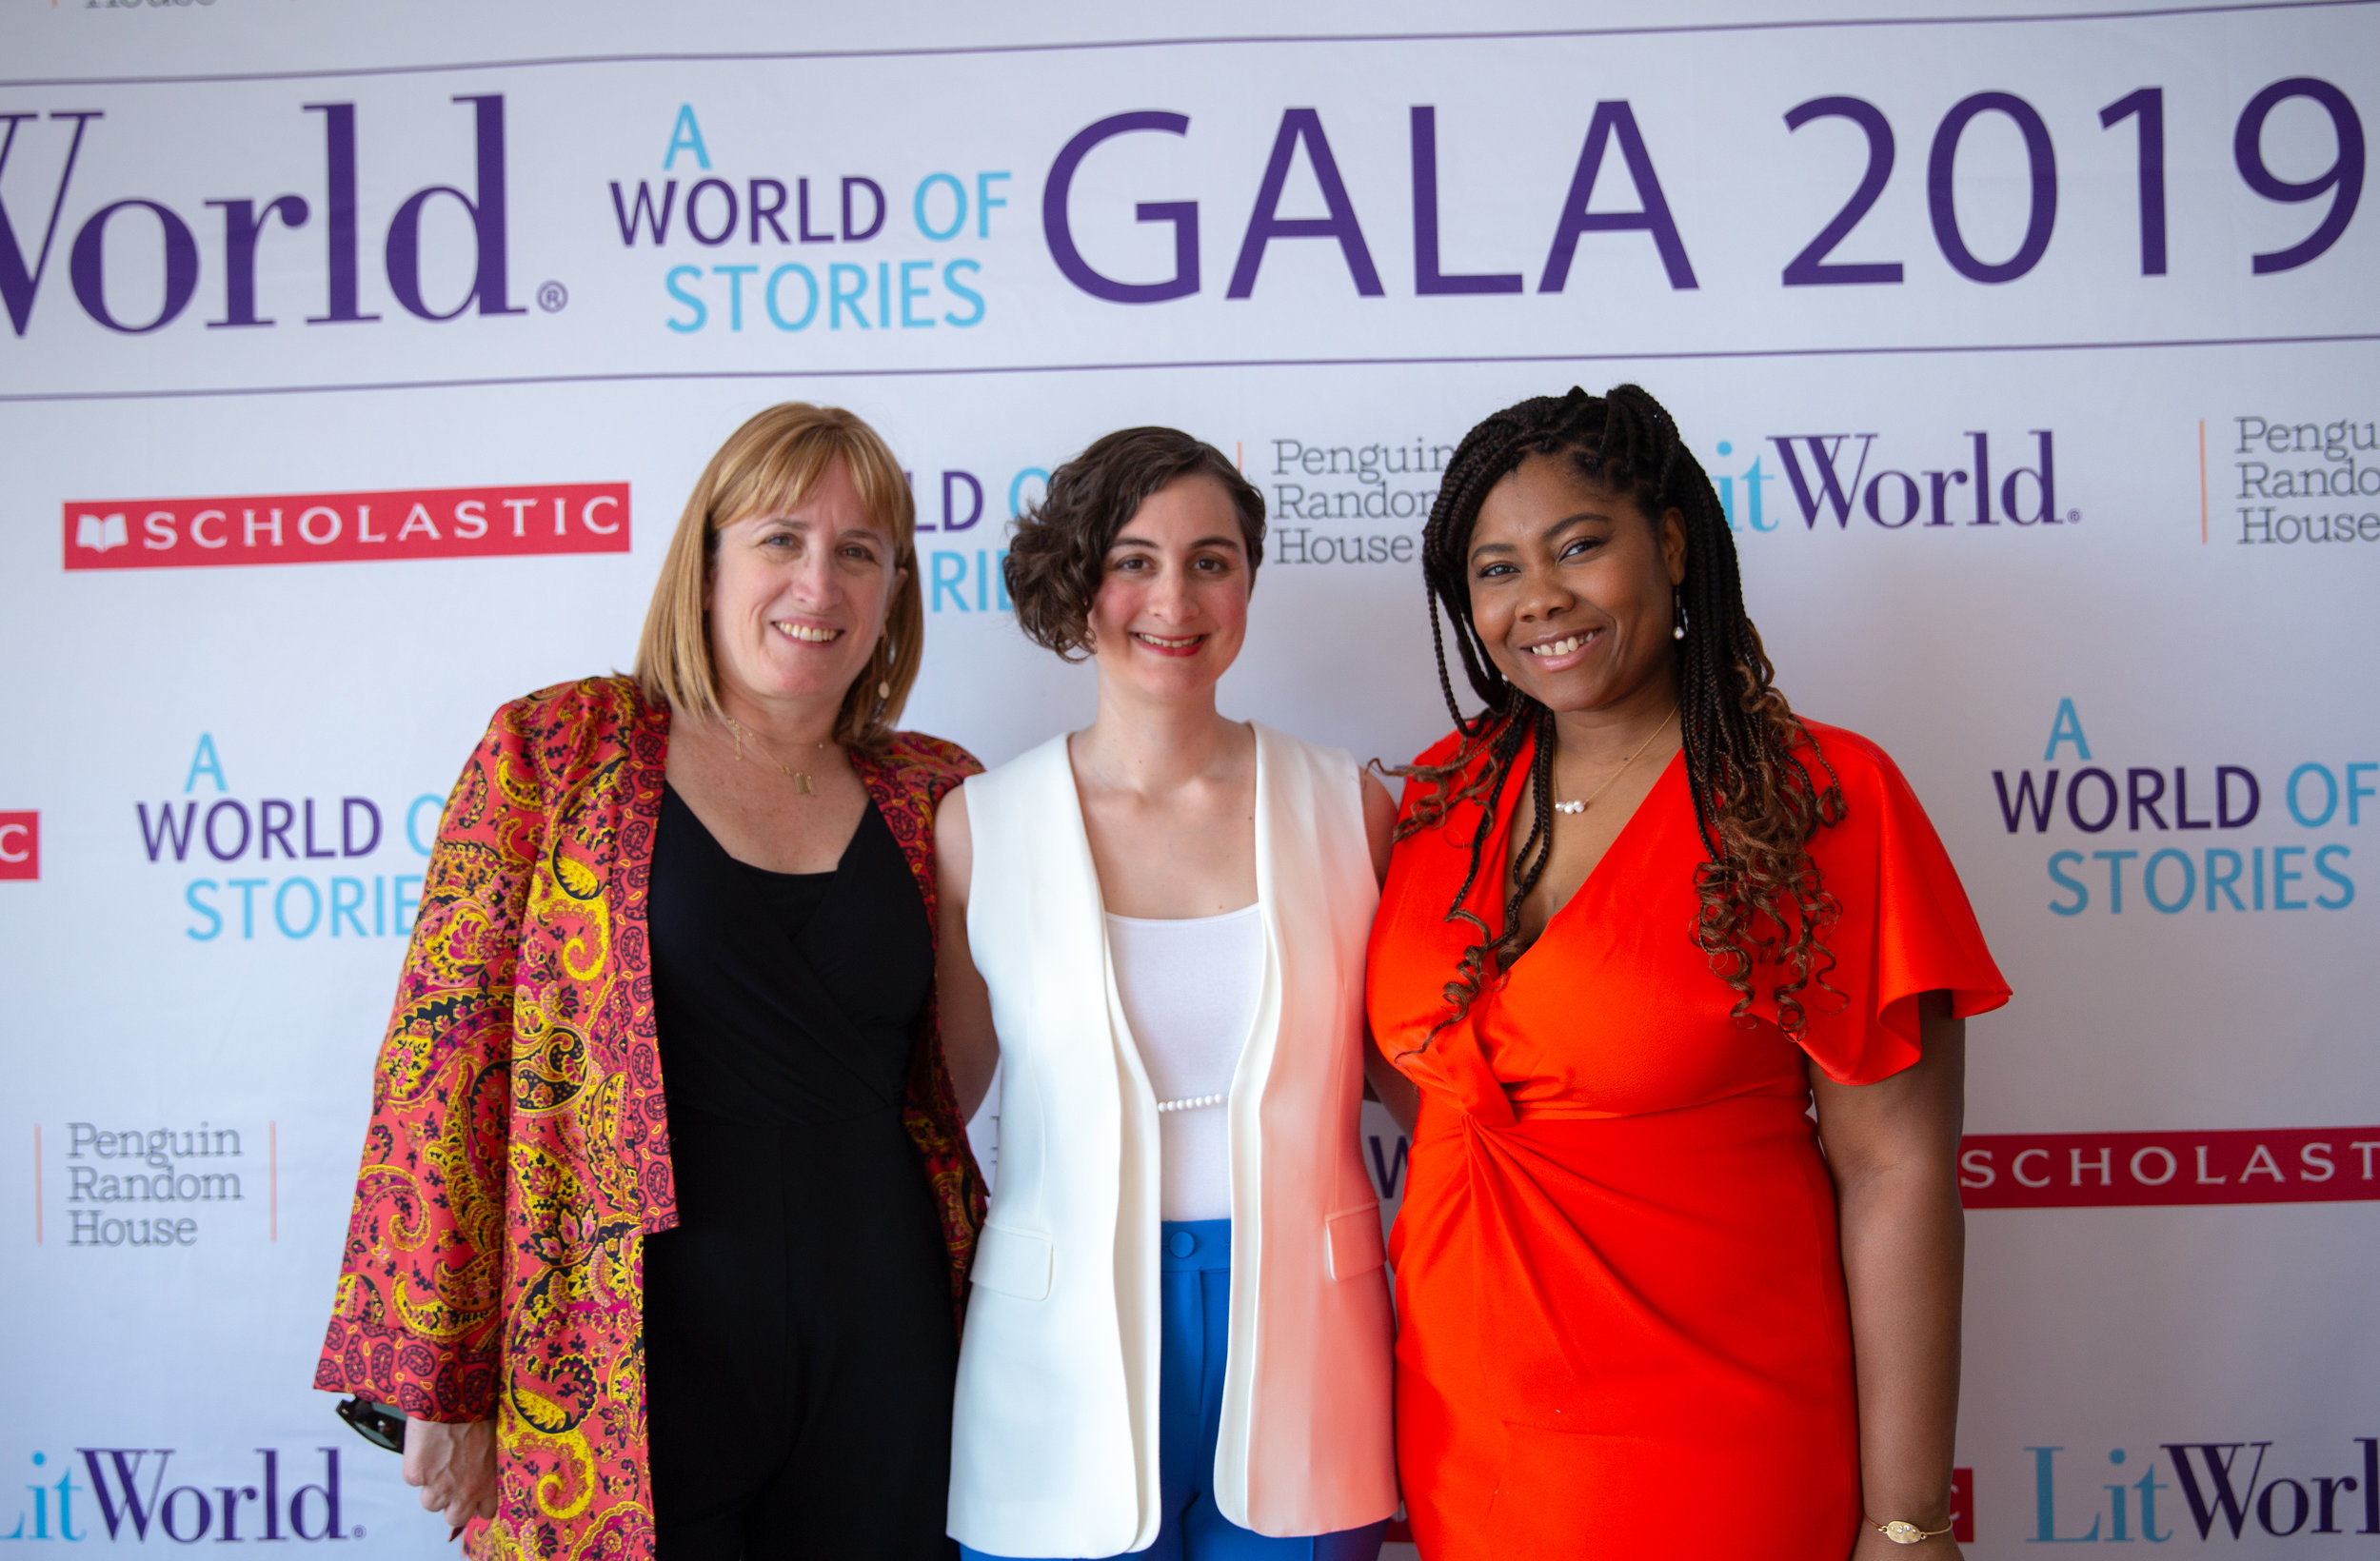 LITWORLD_GALA19-6.jpg